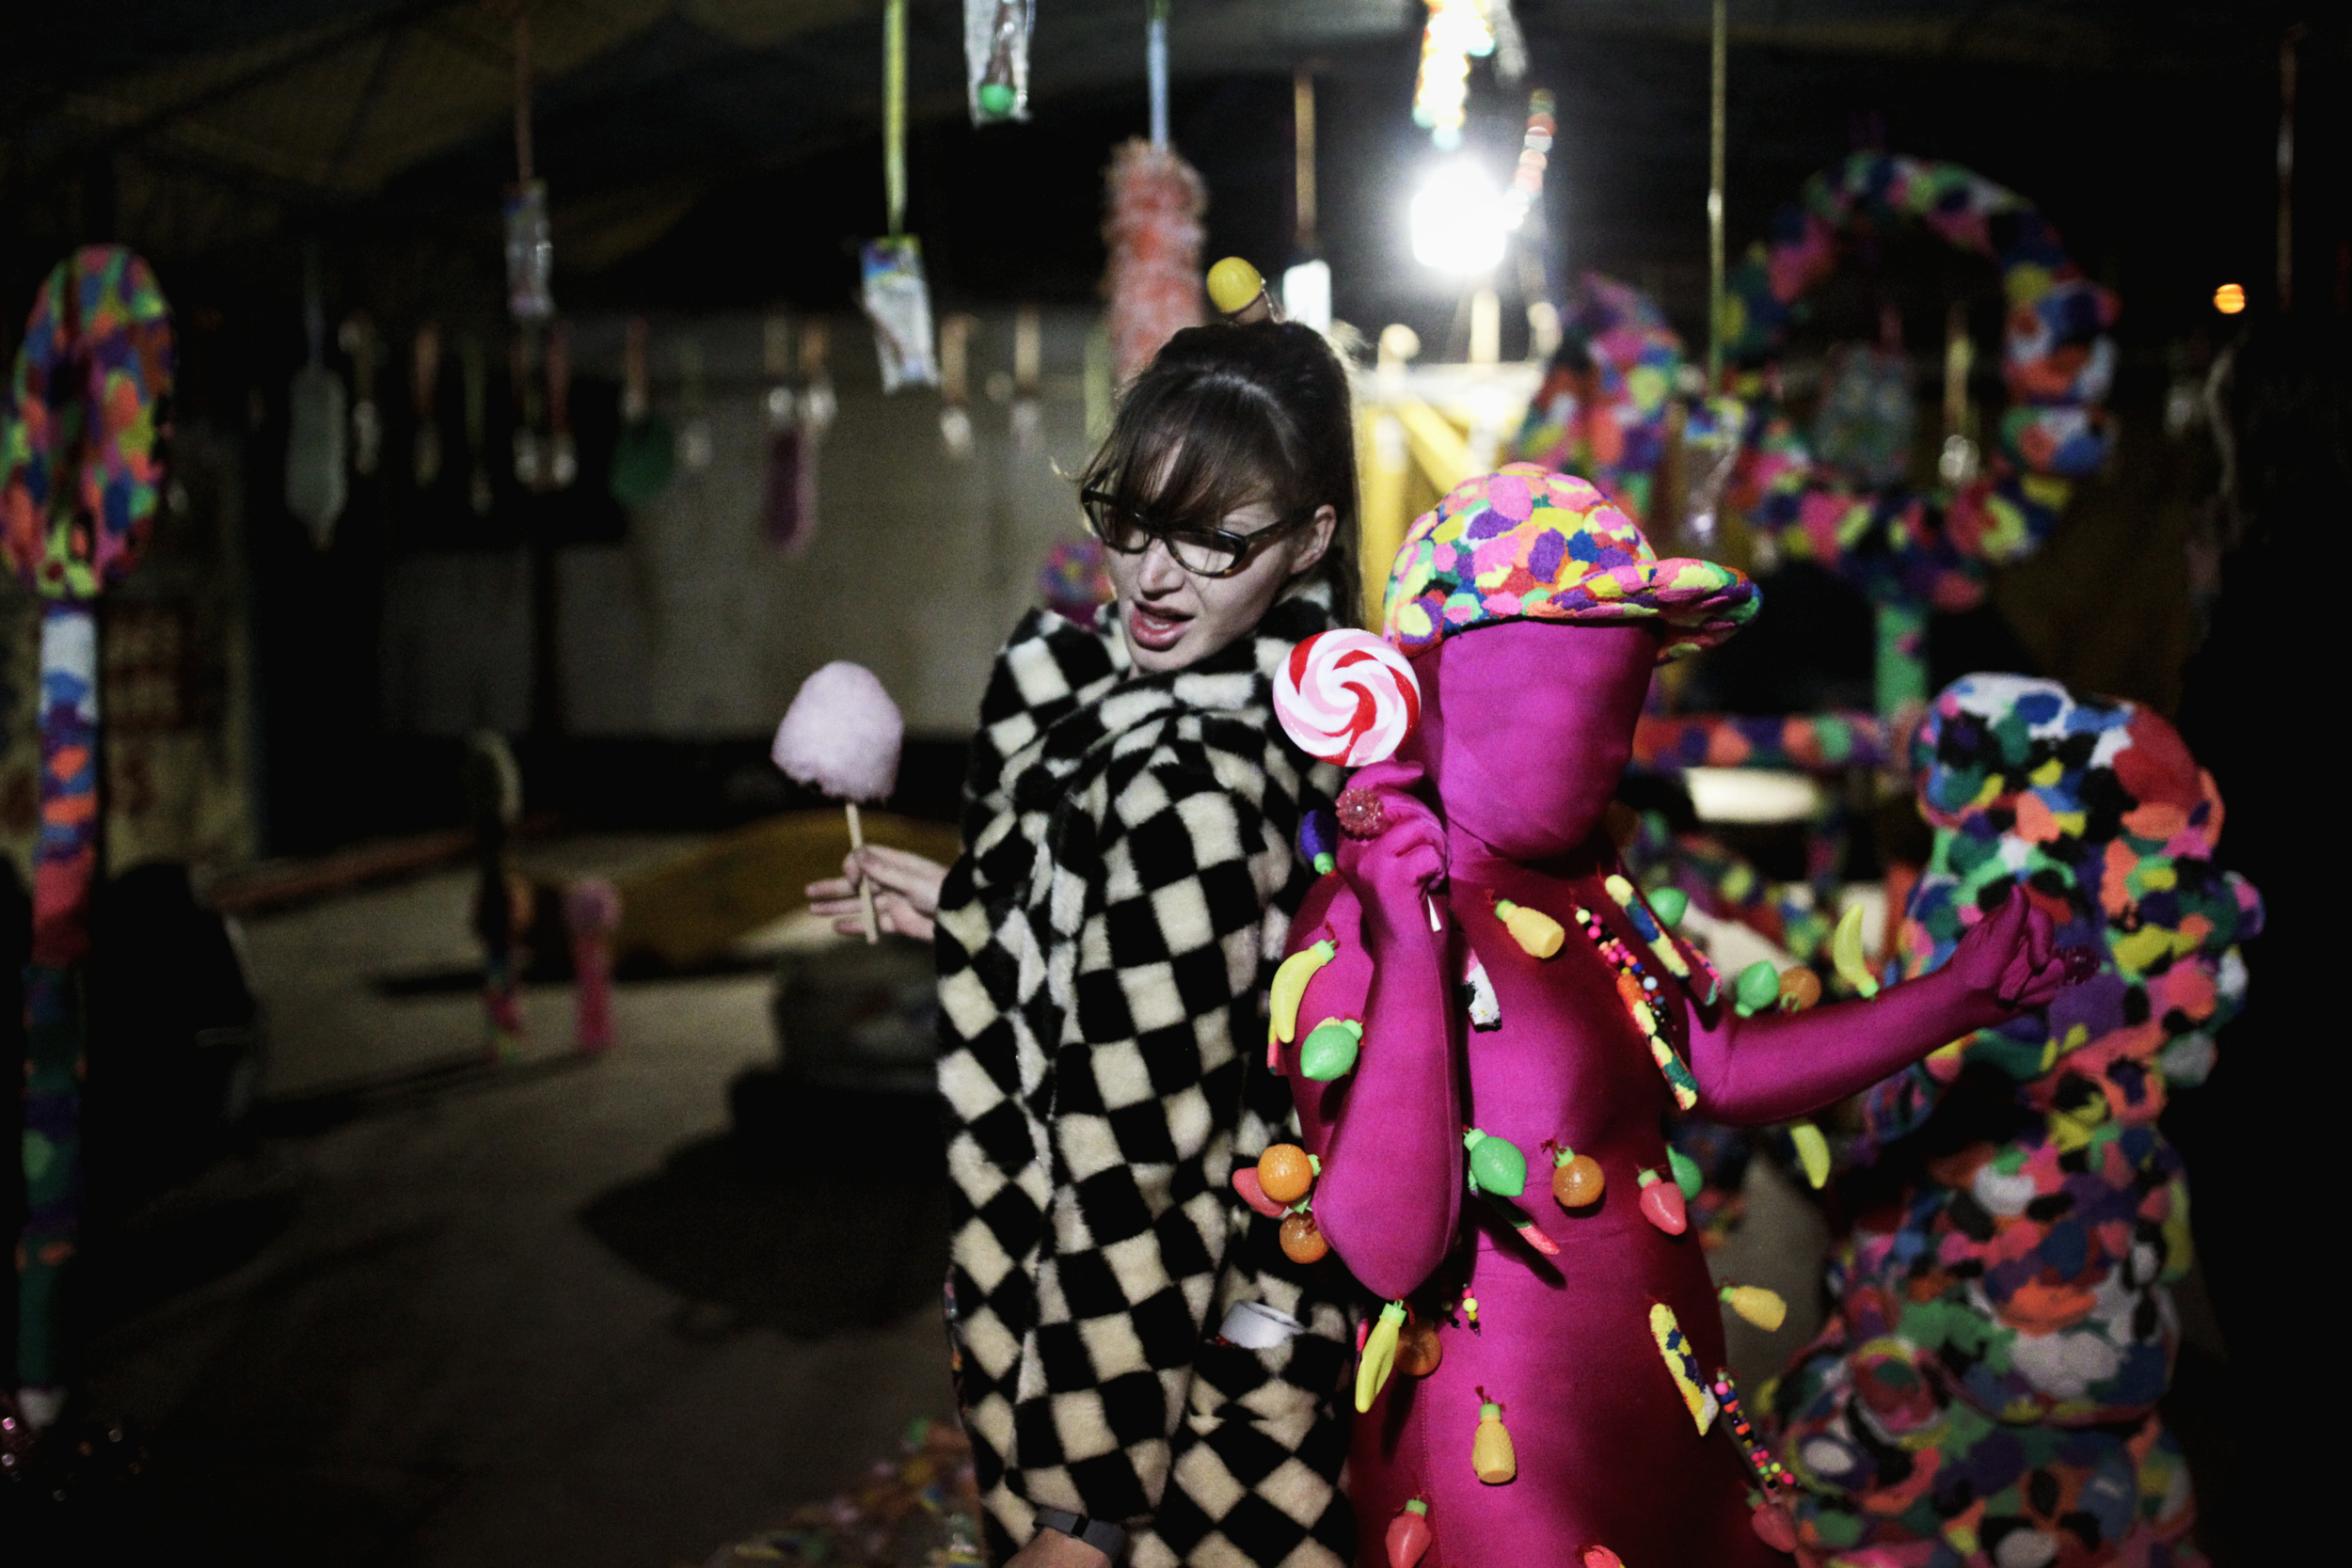 Dancing in Rosie Deacon's art installation 'Candy Shop'